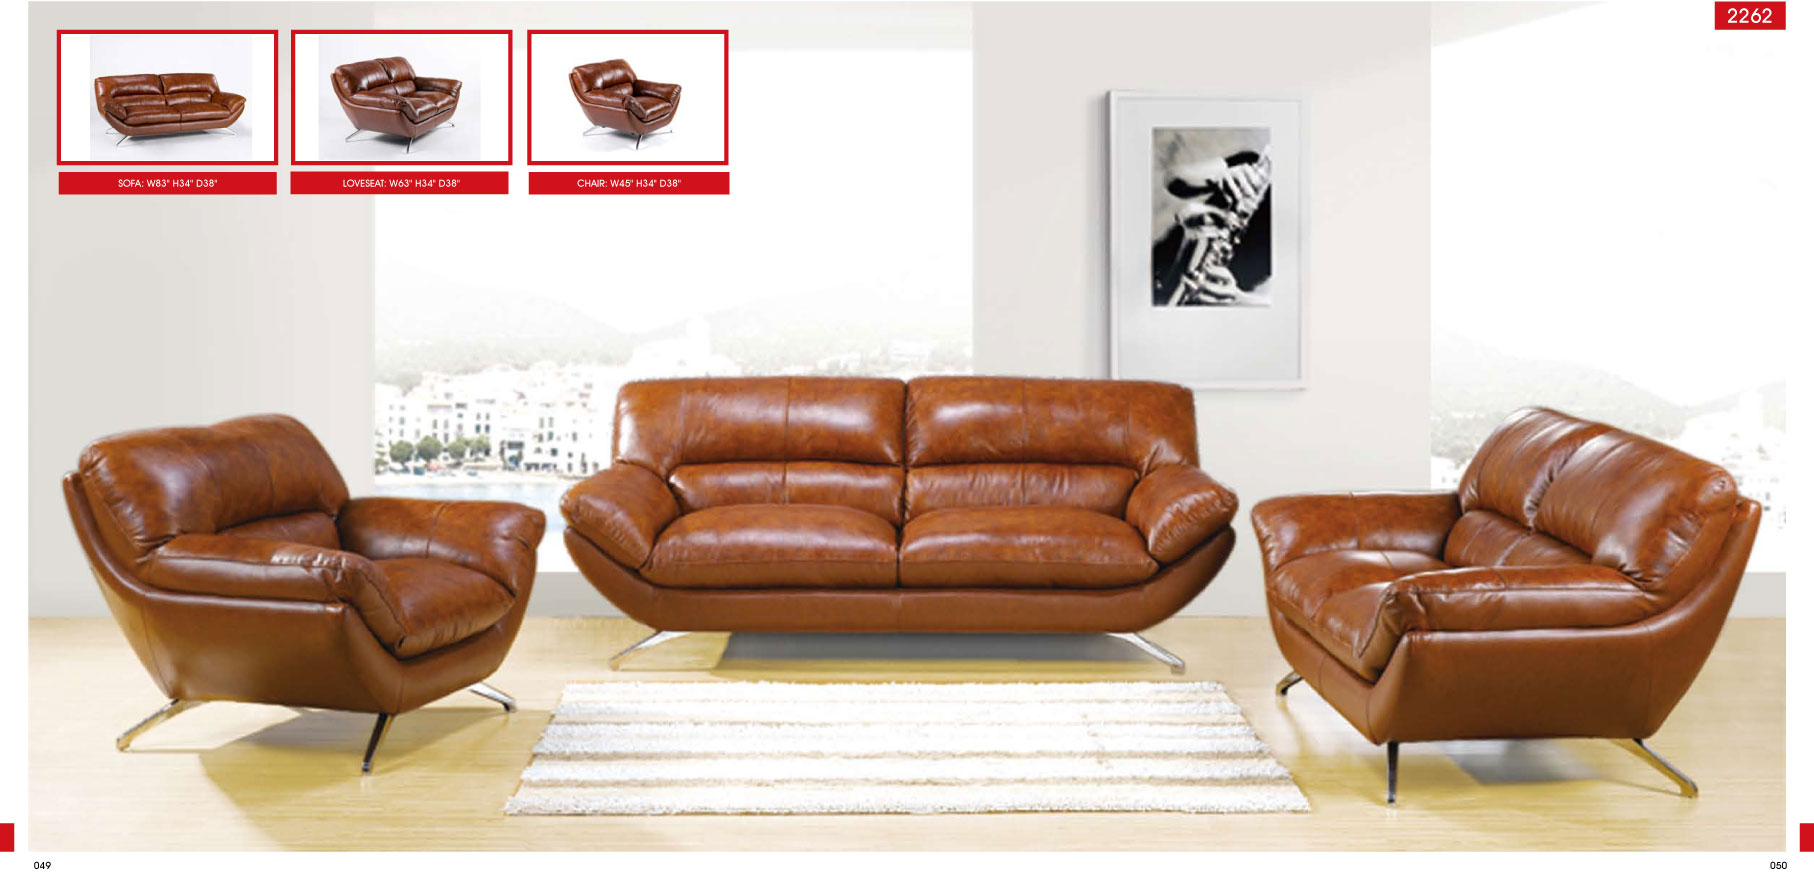 Italian Leather Living Room Furniture Furniture In Brooklyn At Gogofurniturecom